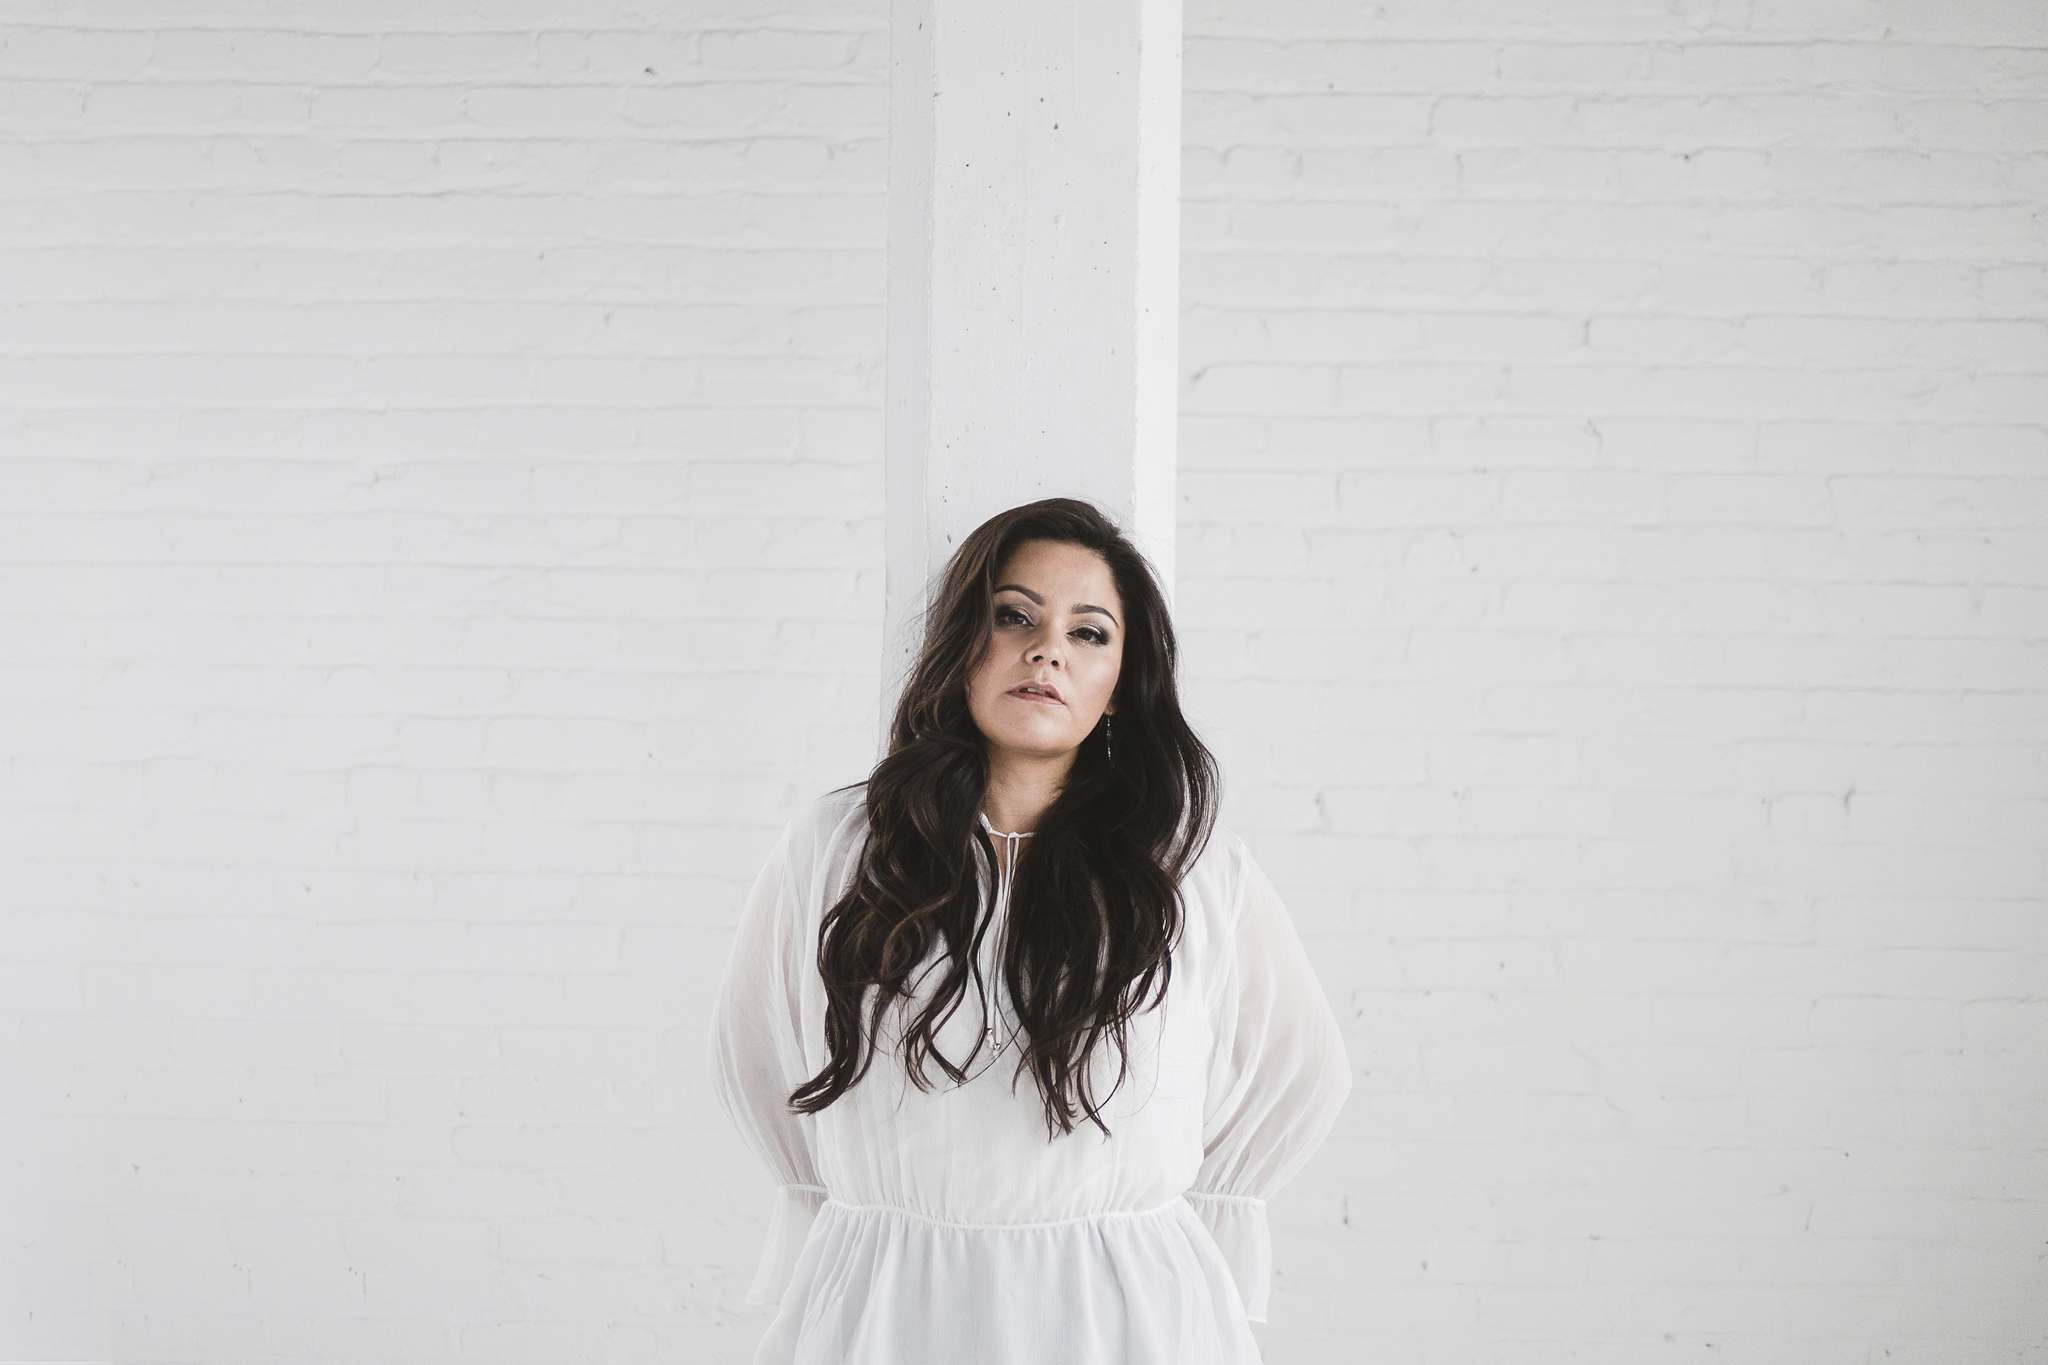 Cree singer-songwriter Jade Turner is excited to be releasing new music again after her maternity leave was extended by the COVID-19 pandemic.